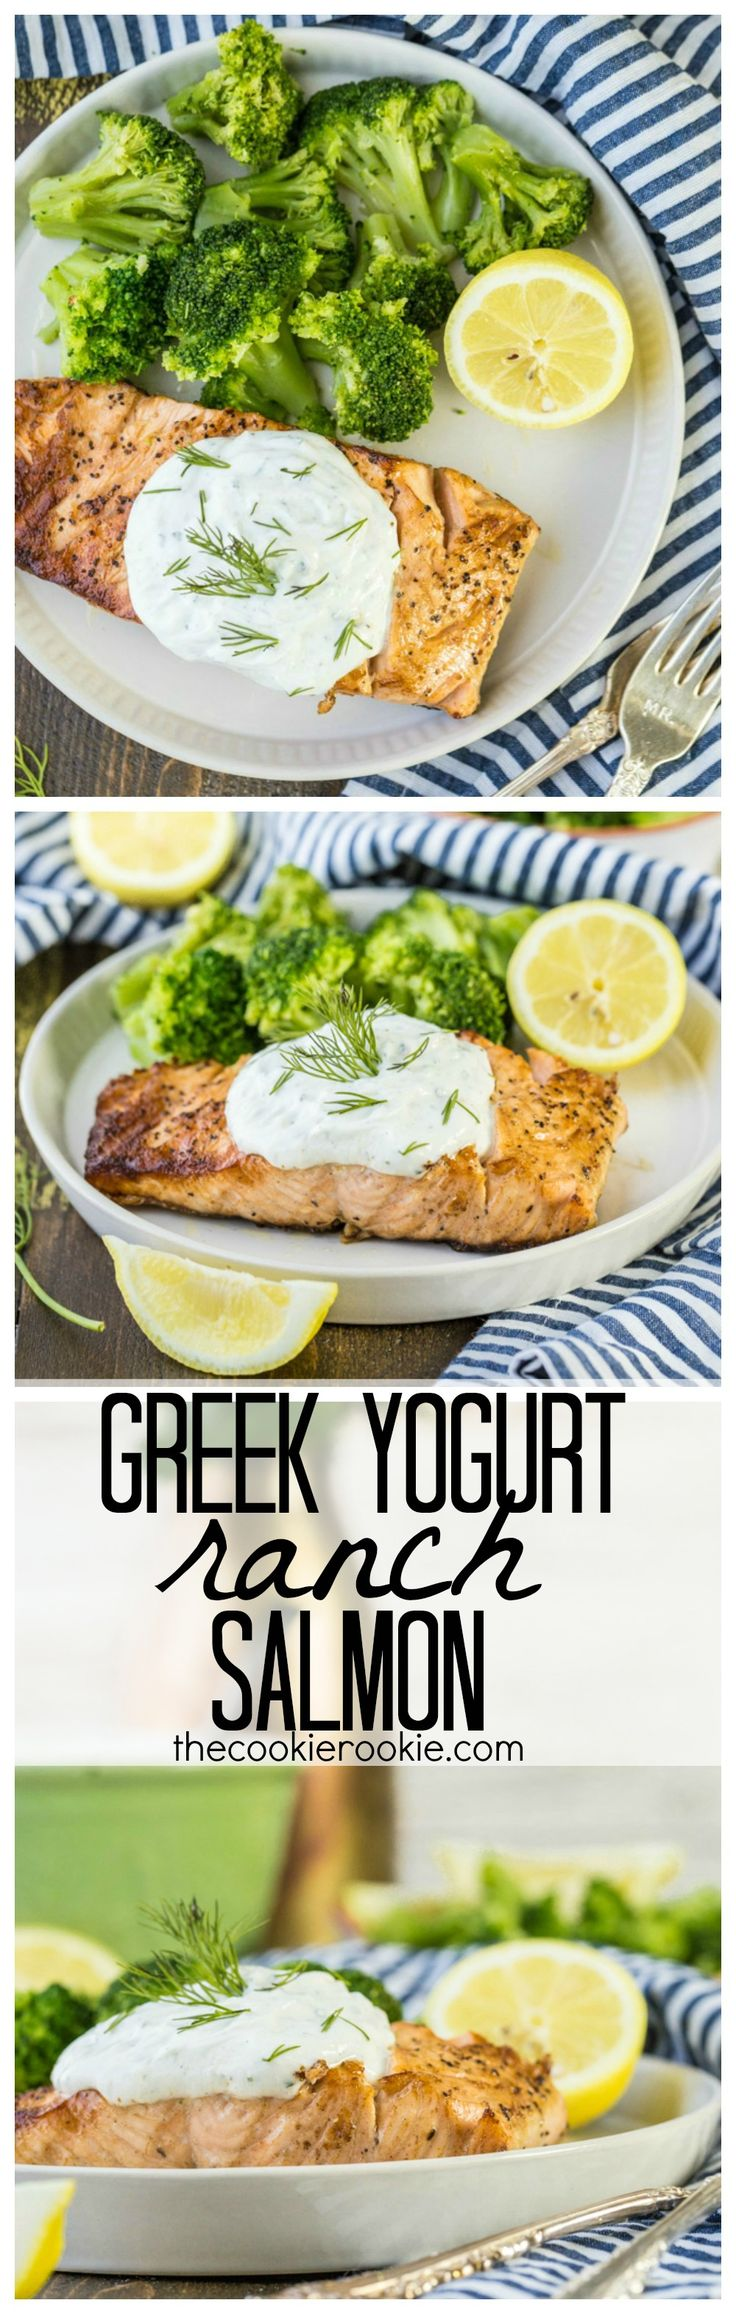 Greek Yogurt Ranch Salmon, a healthy and easy DELICIOUS dinner that anyone can make in minutes. OUR FAVORITE meal on the grill! #ad #HiddenValleyGreek